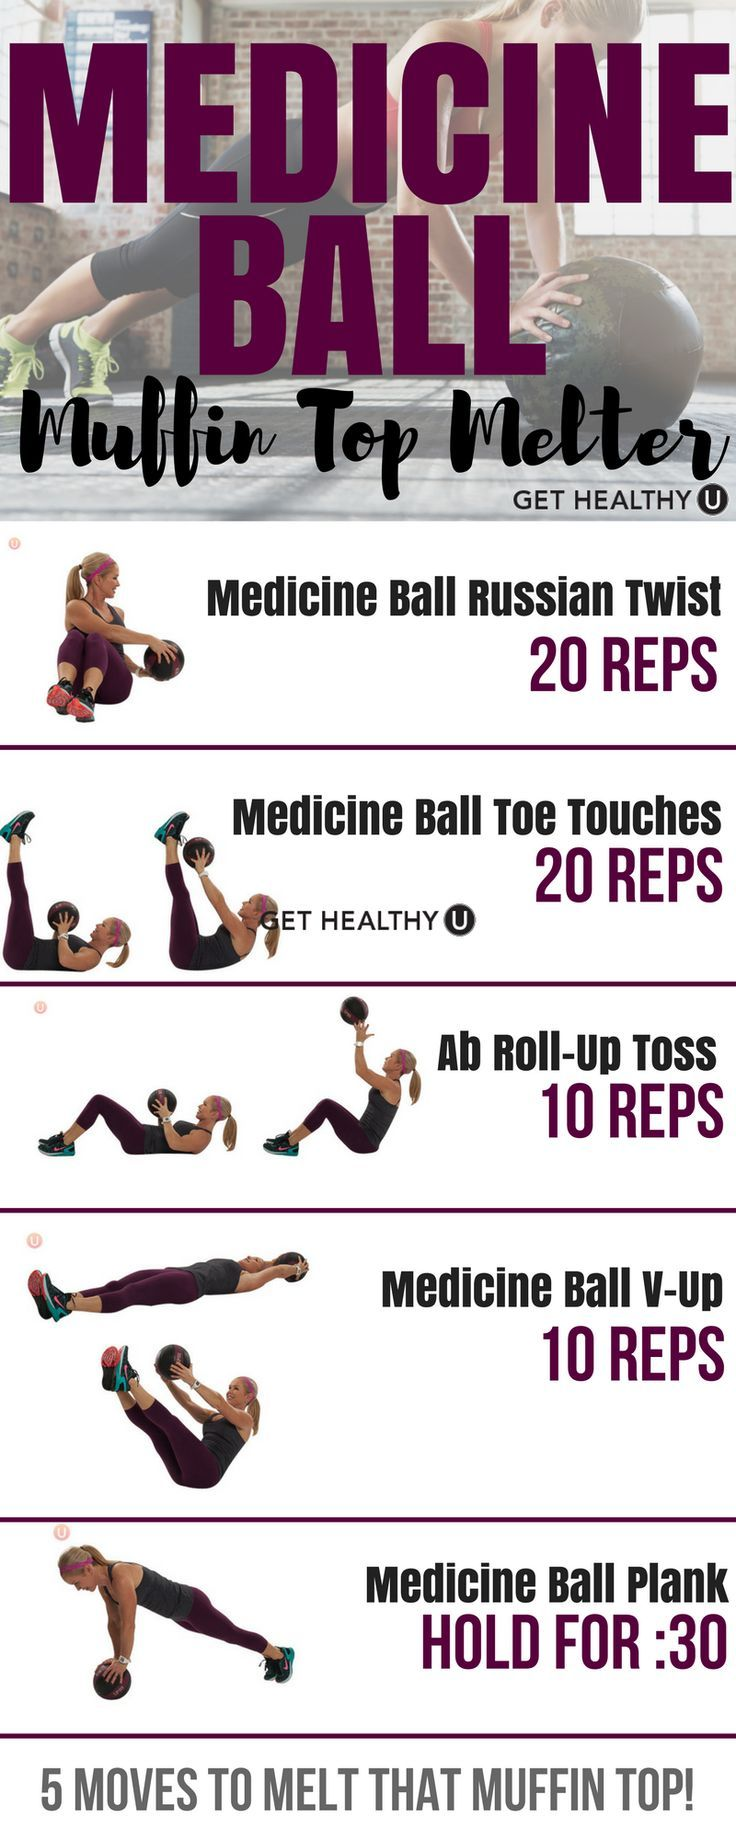 Medicine ball muffin top melter workout. Strengthen your abs back and core wit #fitness #exercises